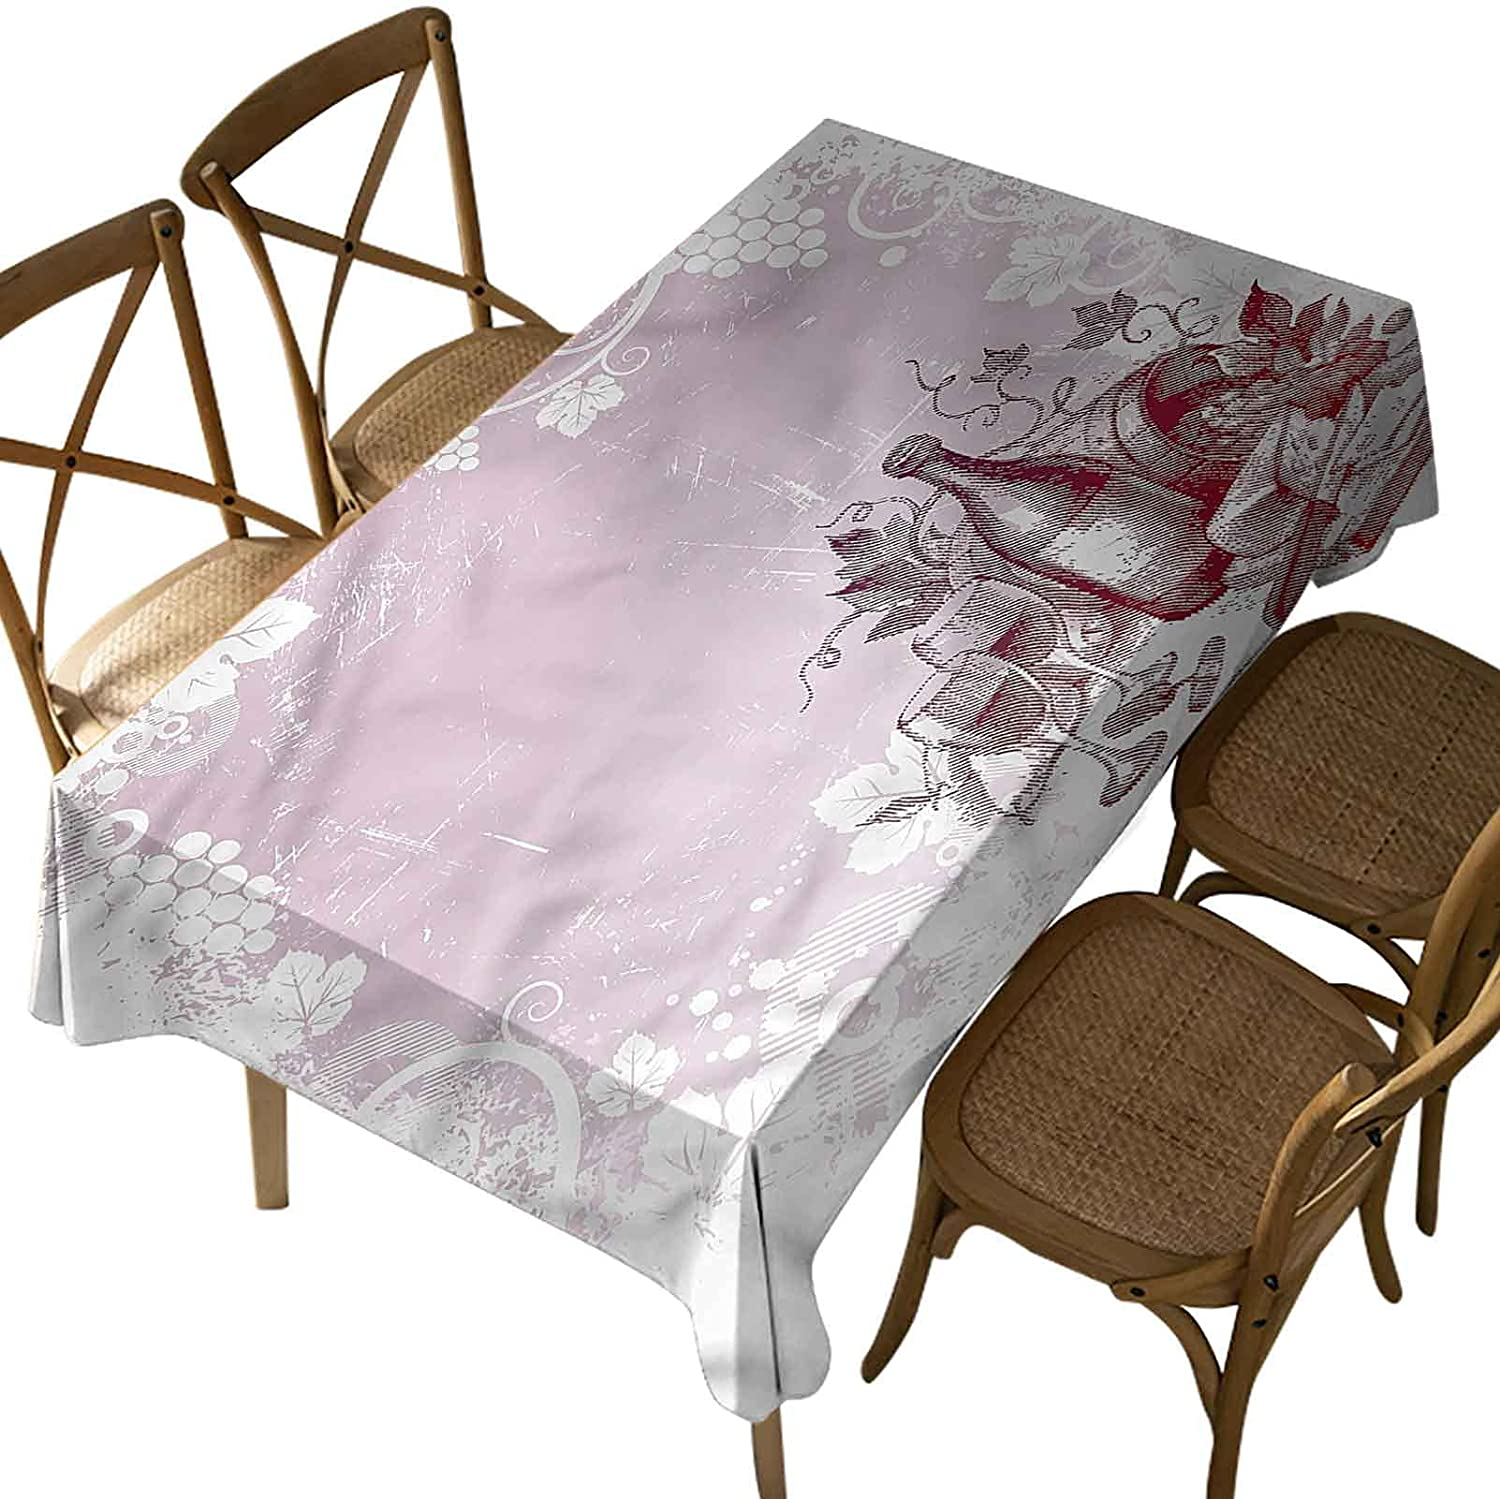 Iuvolux Wedding Rectangular Tablecloth,Wine,Grunge Abstract Framework,Wrinkle Free Anti-Fading Table Cover,for Kitchen Dining, Party, Holiday,Buffet Oblong 60 x 120 Inch